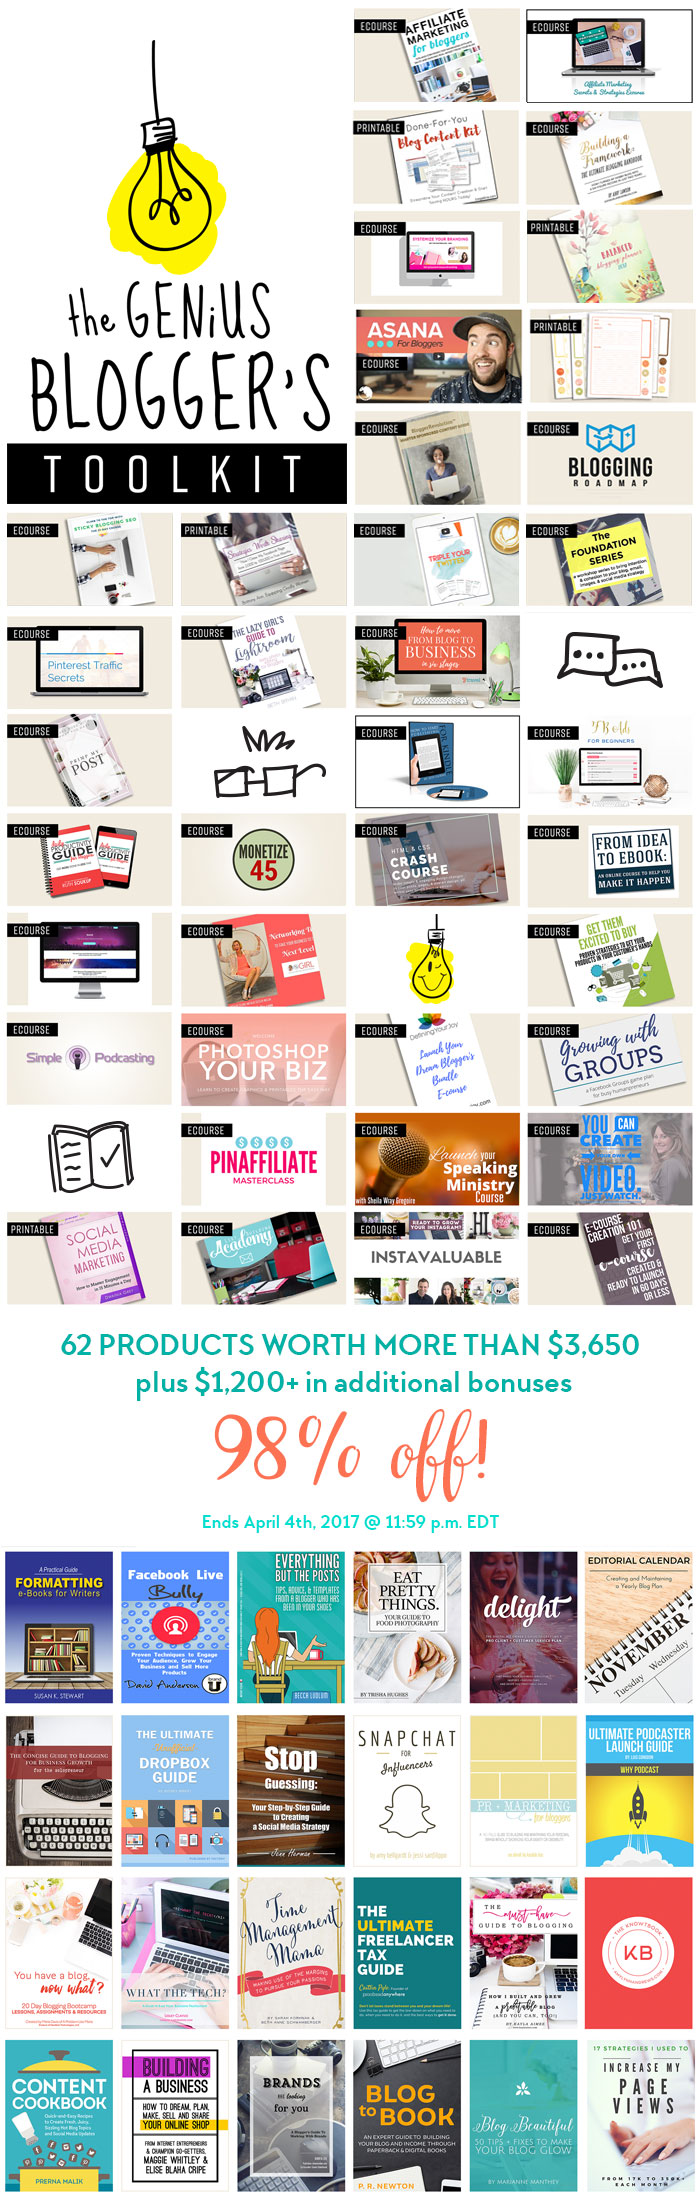 The Genius Blogger's Toolkit is a bundle of 24 ebooks, 33 ecourses + audio and 5 printable packs (and 17 bonuses) that's only available for TWO DAYS: April 3 - April 4, 2017. The best part is that the entire bundle (worth well over $5000) is only $97!! Yep, that's not a typo! Click here right now to get in on it before it's gone forever.